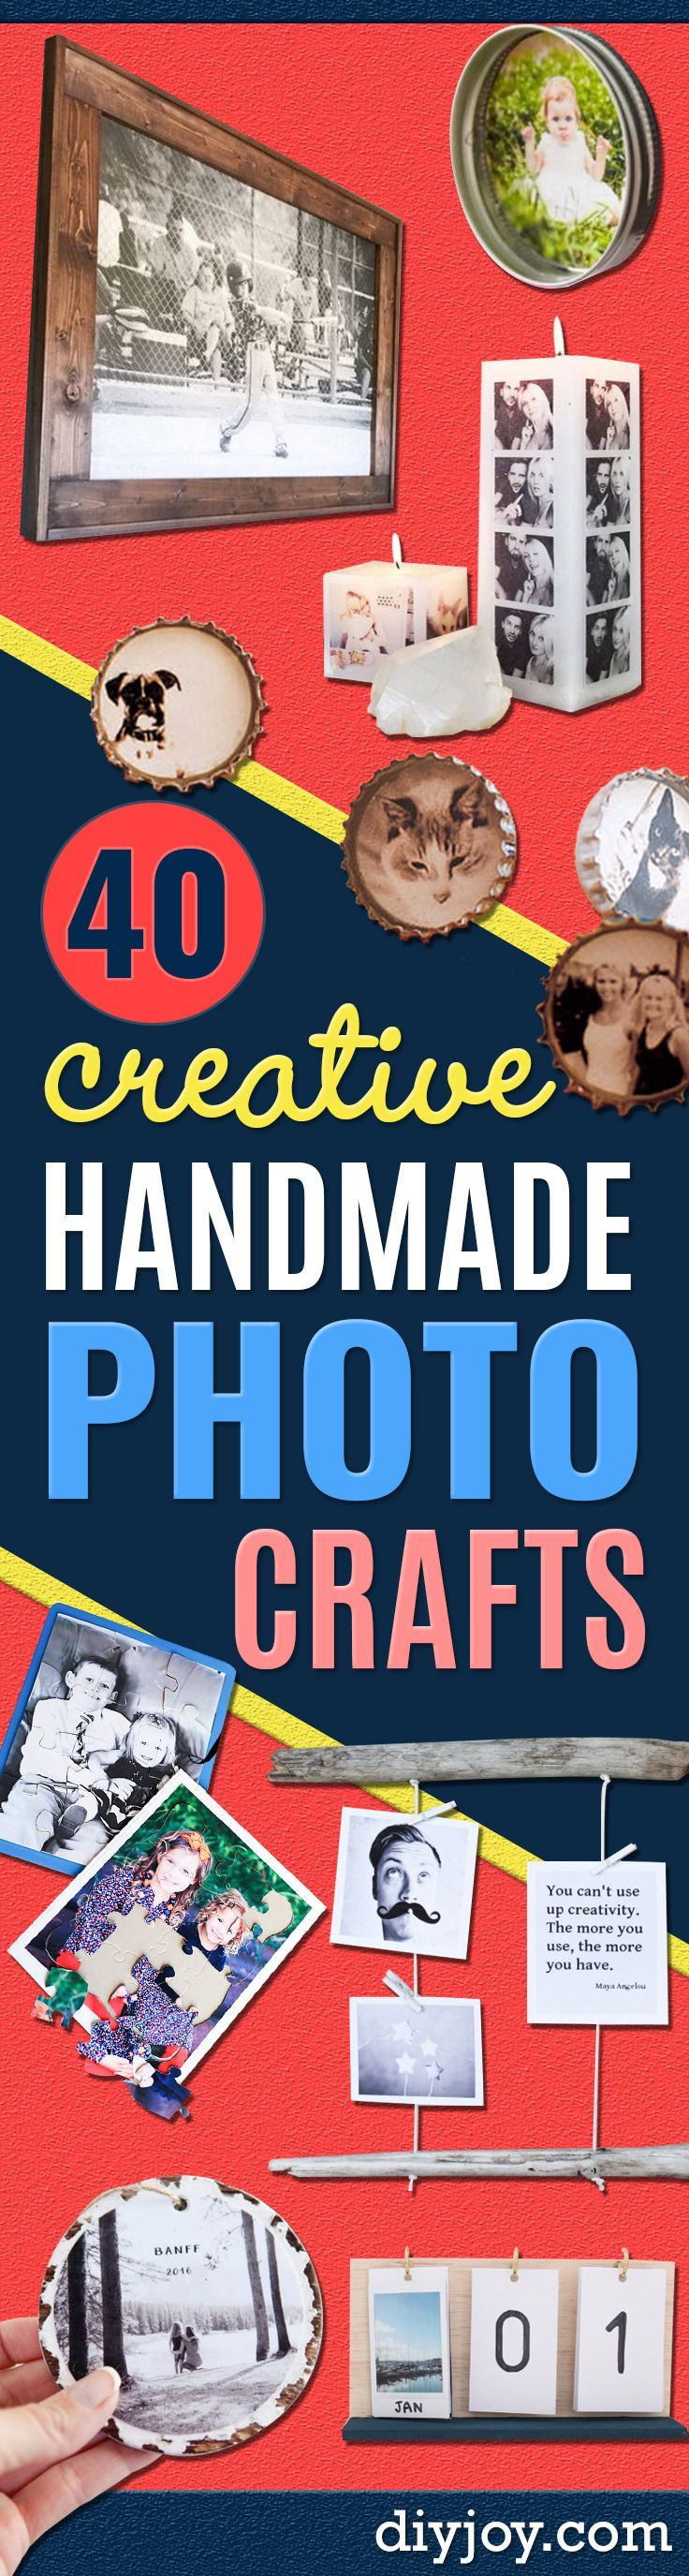 DIY Photo Crafts and Projects for Pictures - Handmade Picture Frame Ideas and Step by Step Tutorials for Making Cool DIY Gifts and Home Decor - Cheap and Easy Photo Frames, Creative Ways to Frame and Mount Photos on Canvas and Display Them In Your House http://diyjoy.com/handmade-photo-crafts